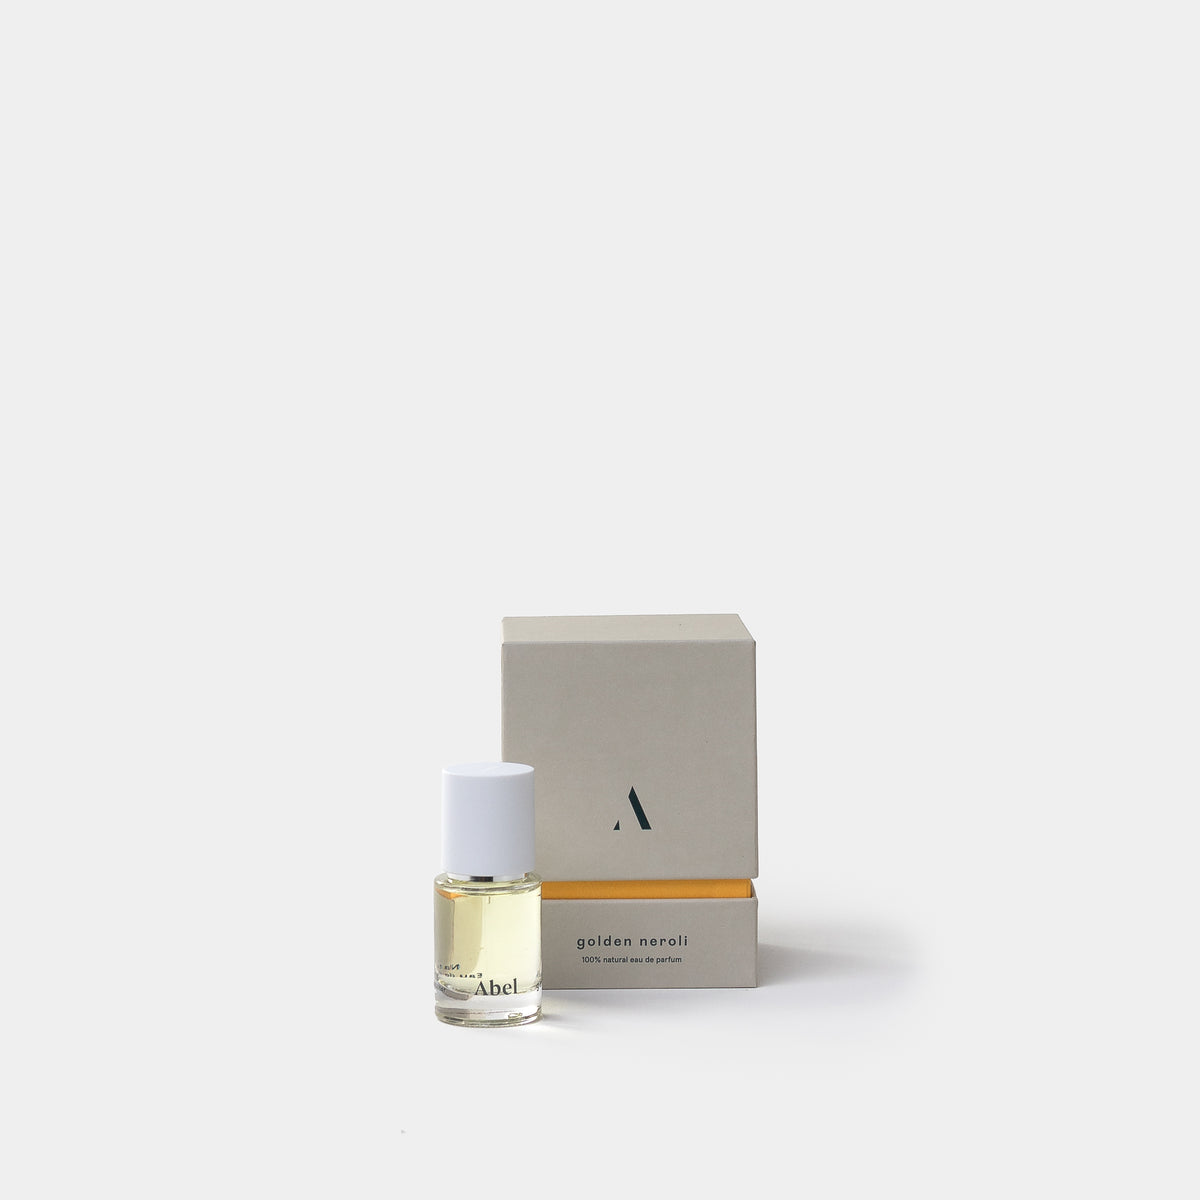 Load image into Gallery viewer, Golden Neroli Parfum - Apothecary – Shoppe Amber Interiors